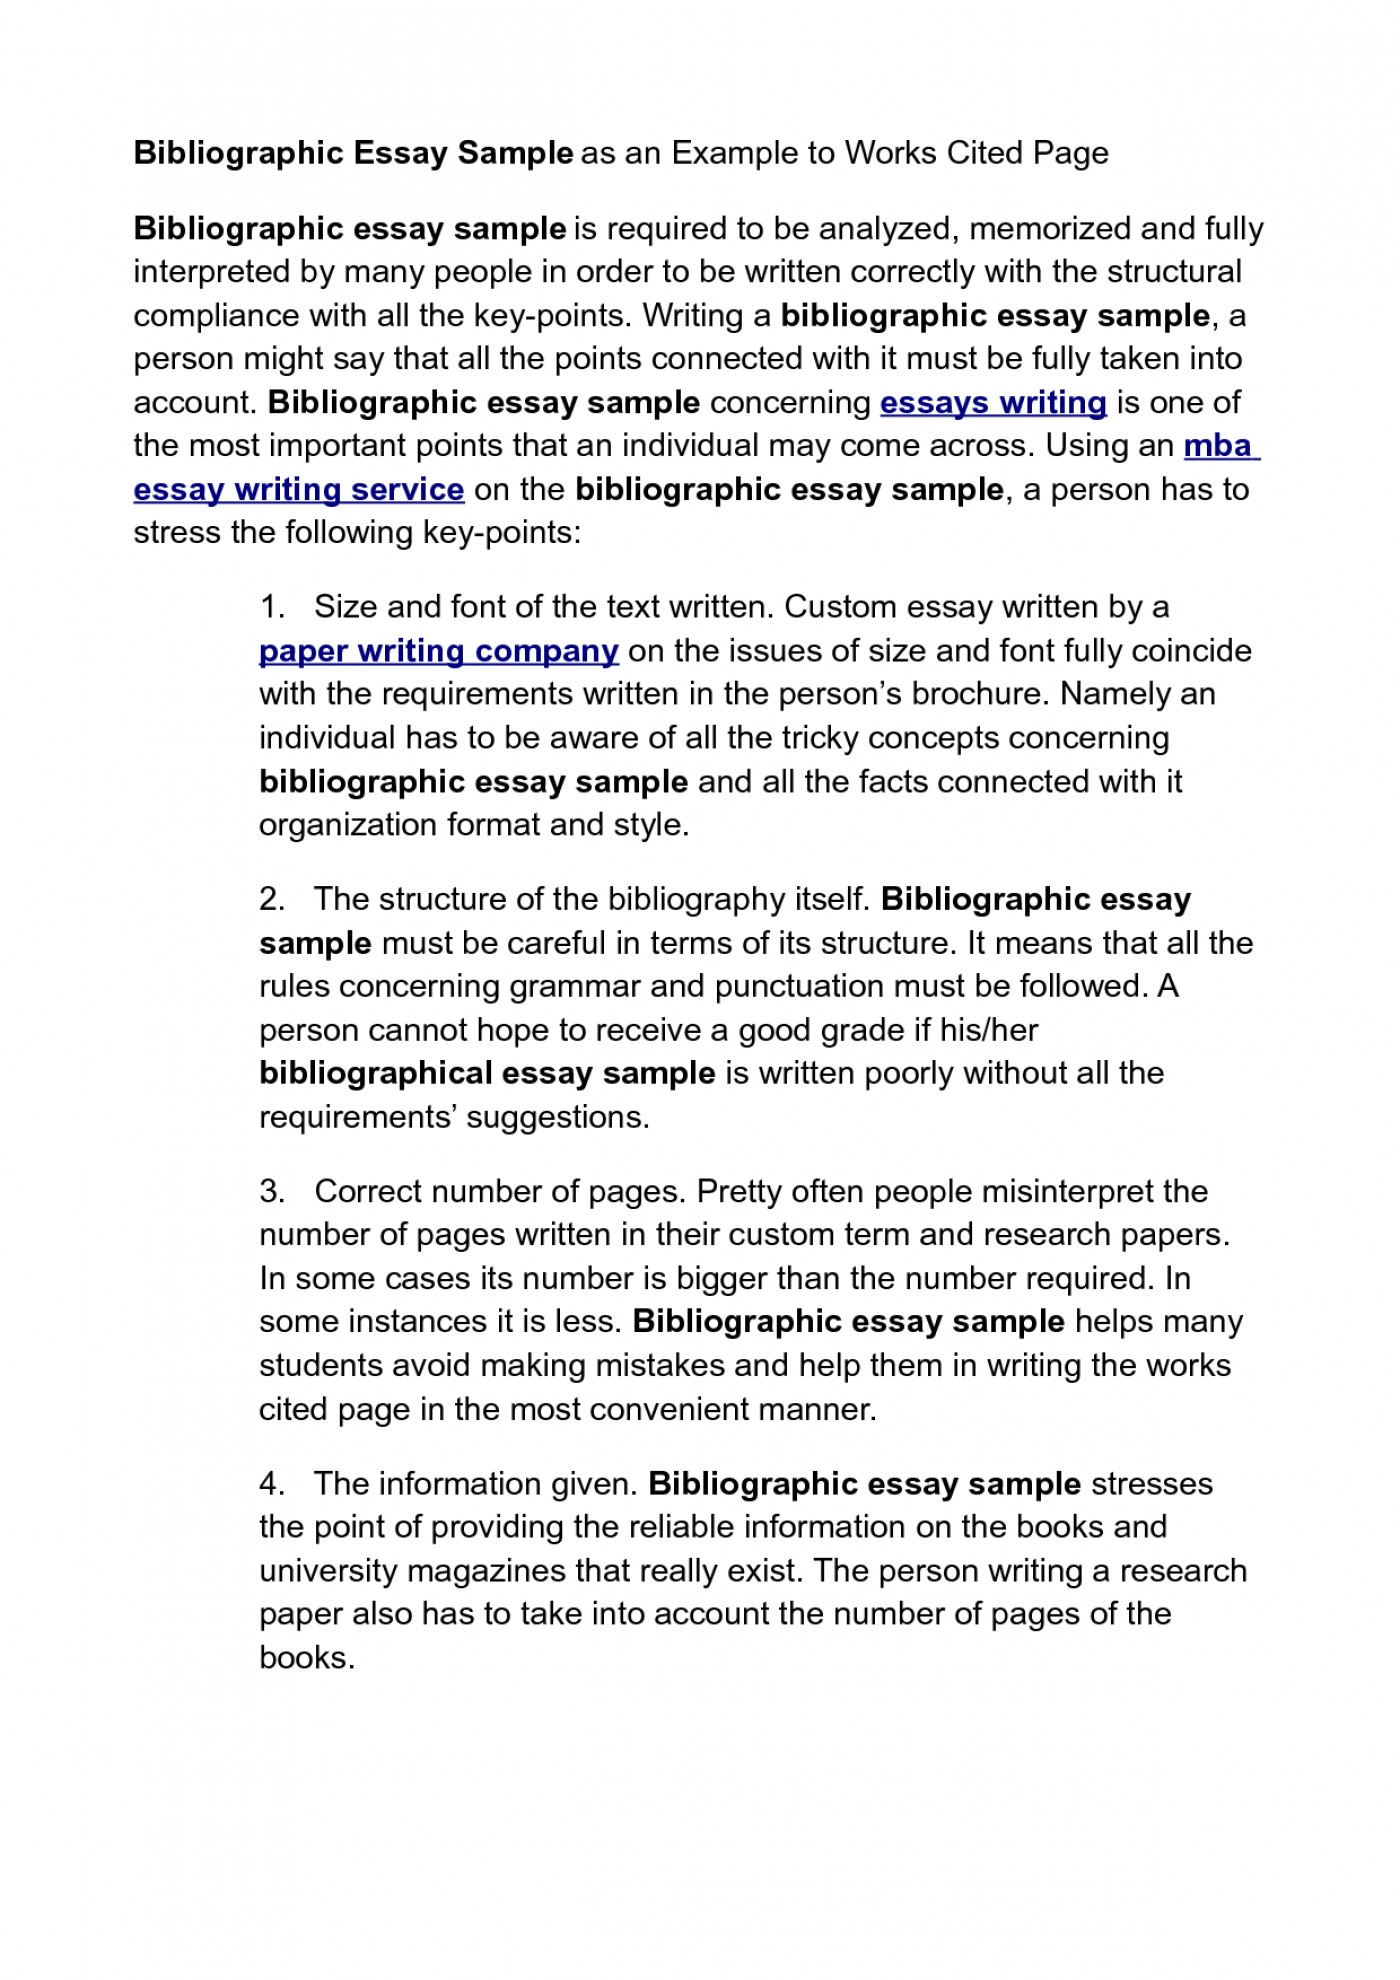 018 How To Cite An Essay Example Sample Persuasive With Works Cited Of Mla L Archaicawful Referencing In A Book Apa Style Text 1400